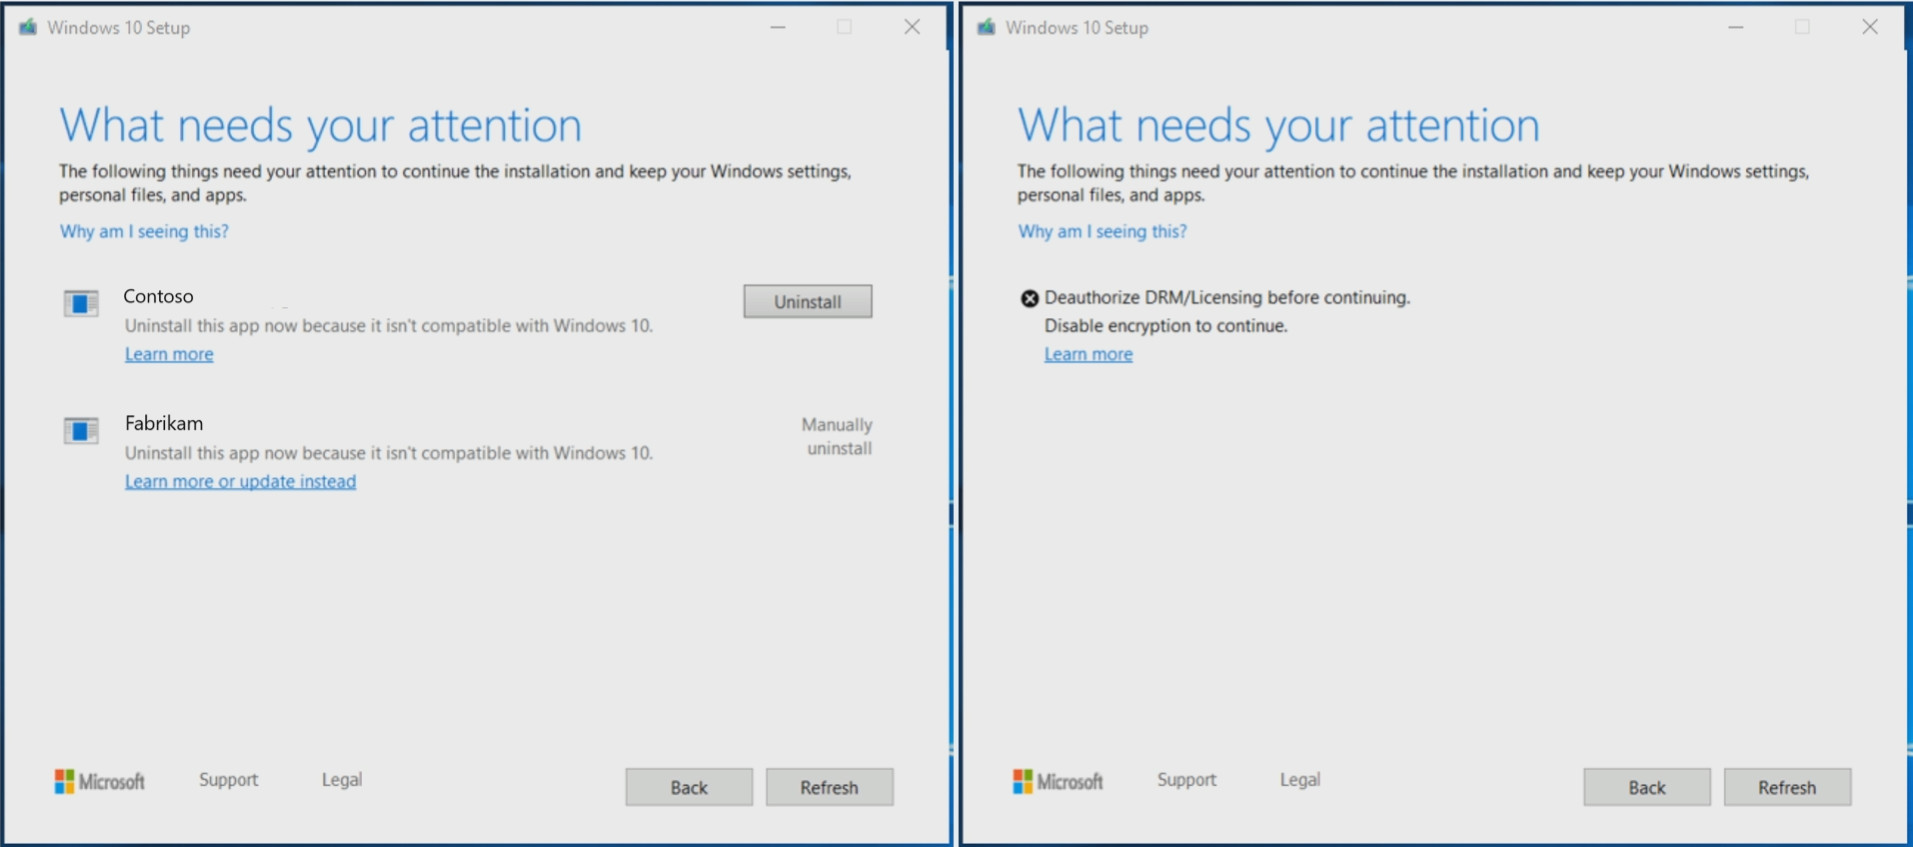 In Windows 10 1903, error messages in setup will offer solutions